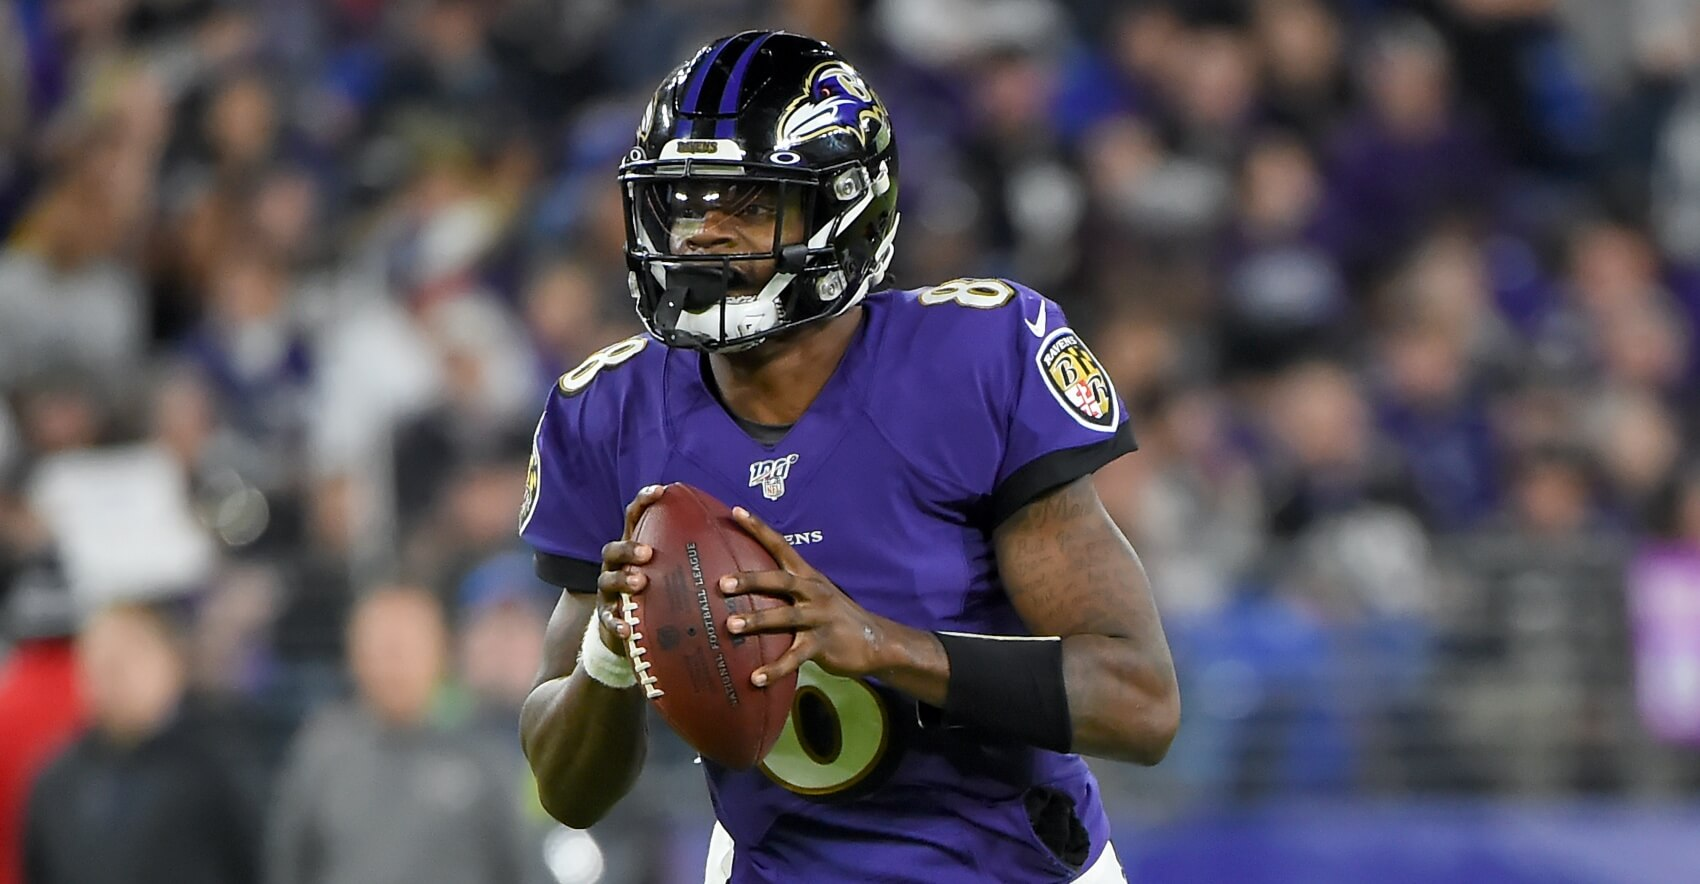 Commissioner Guide: What Type of League are YOU Running? (Fantasy Football)